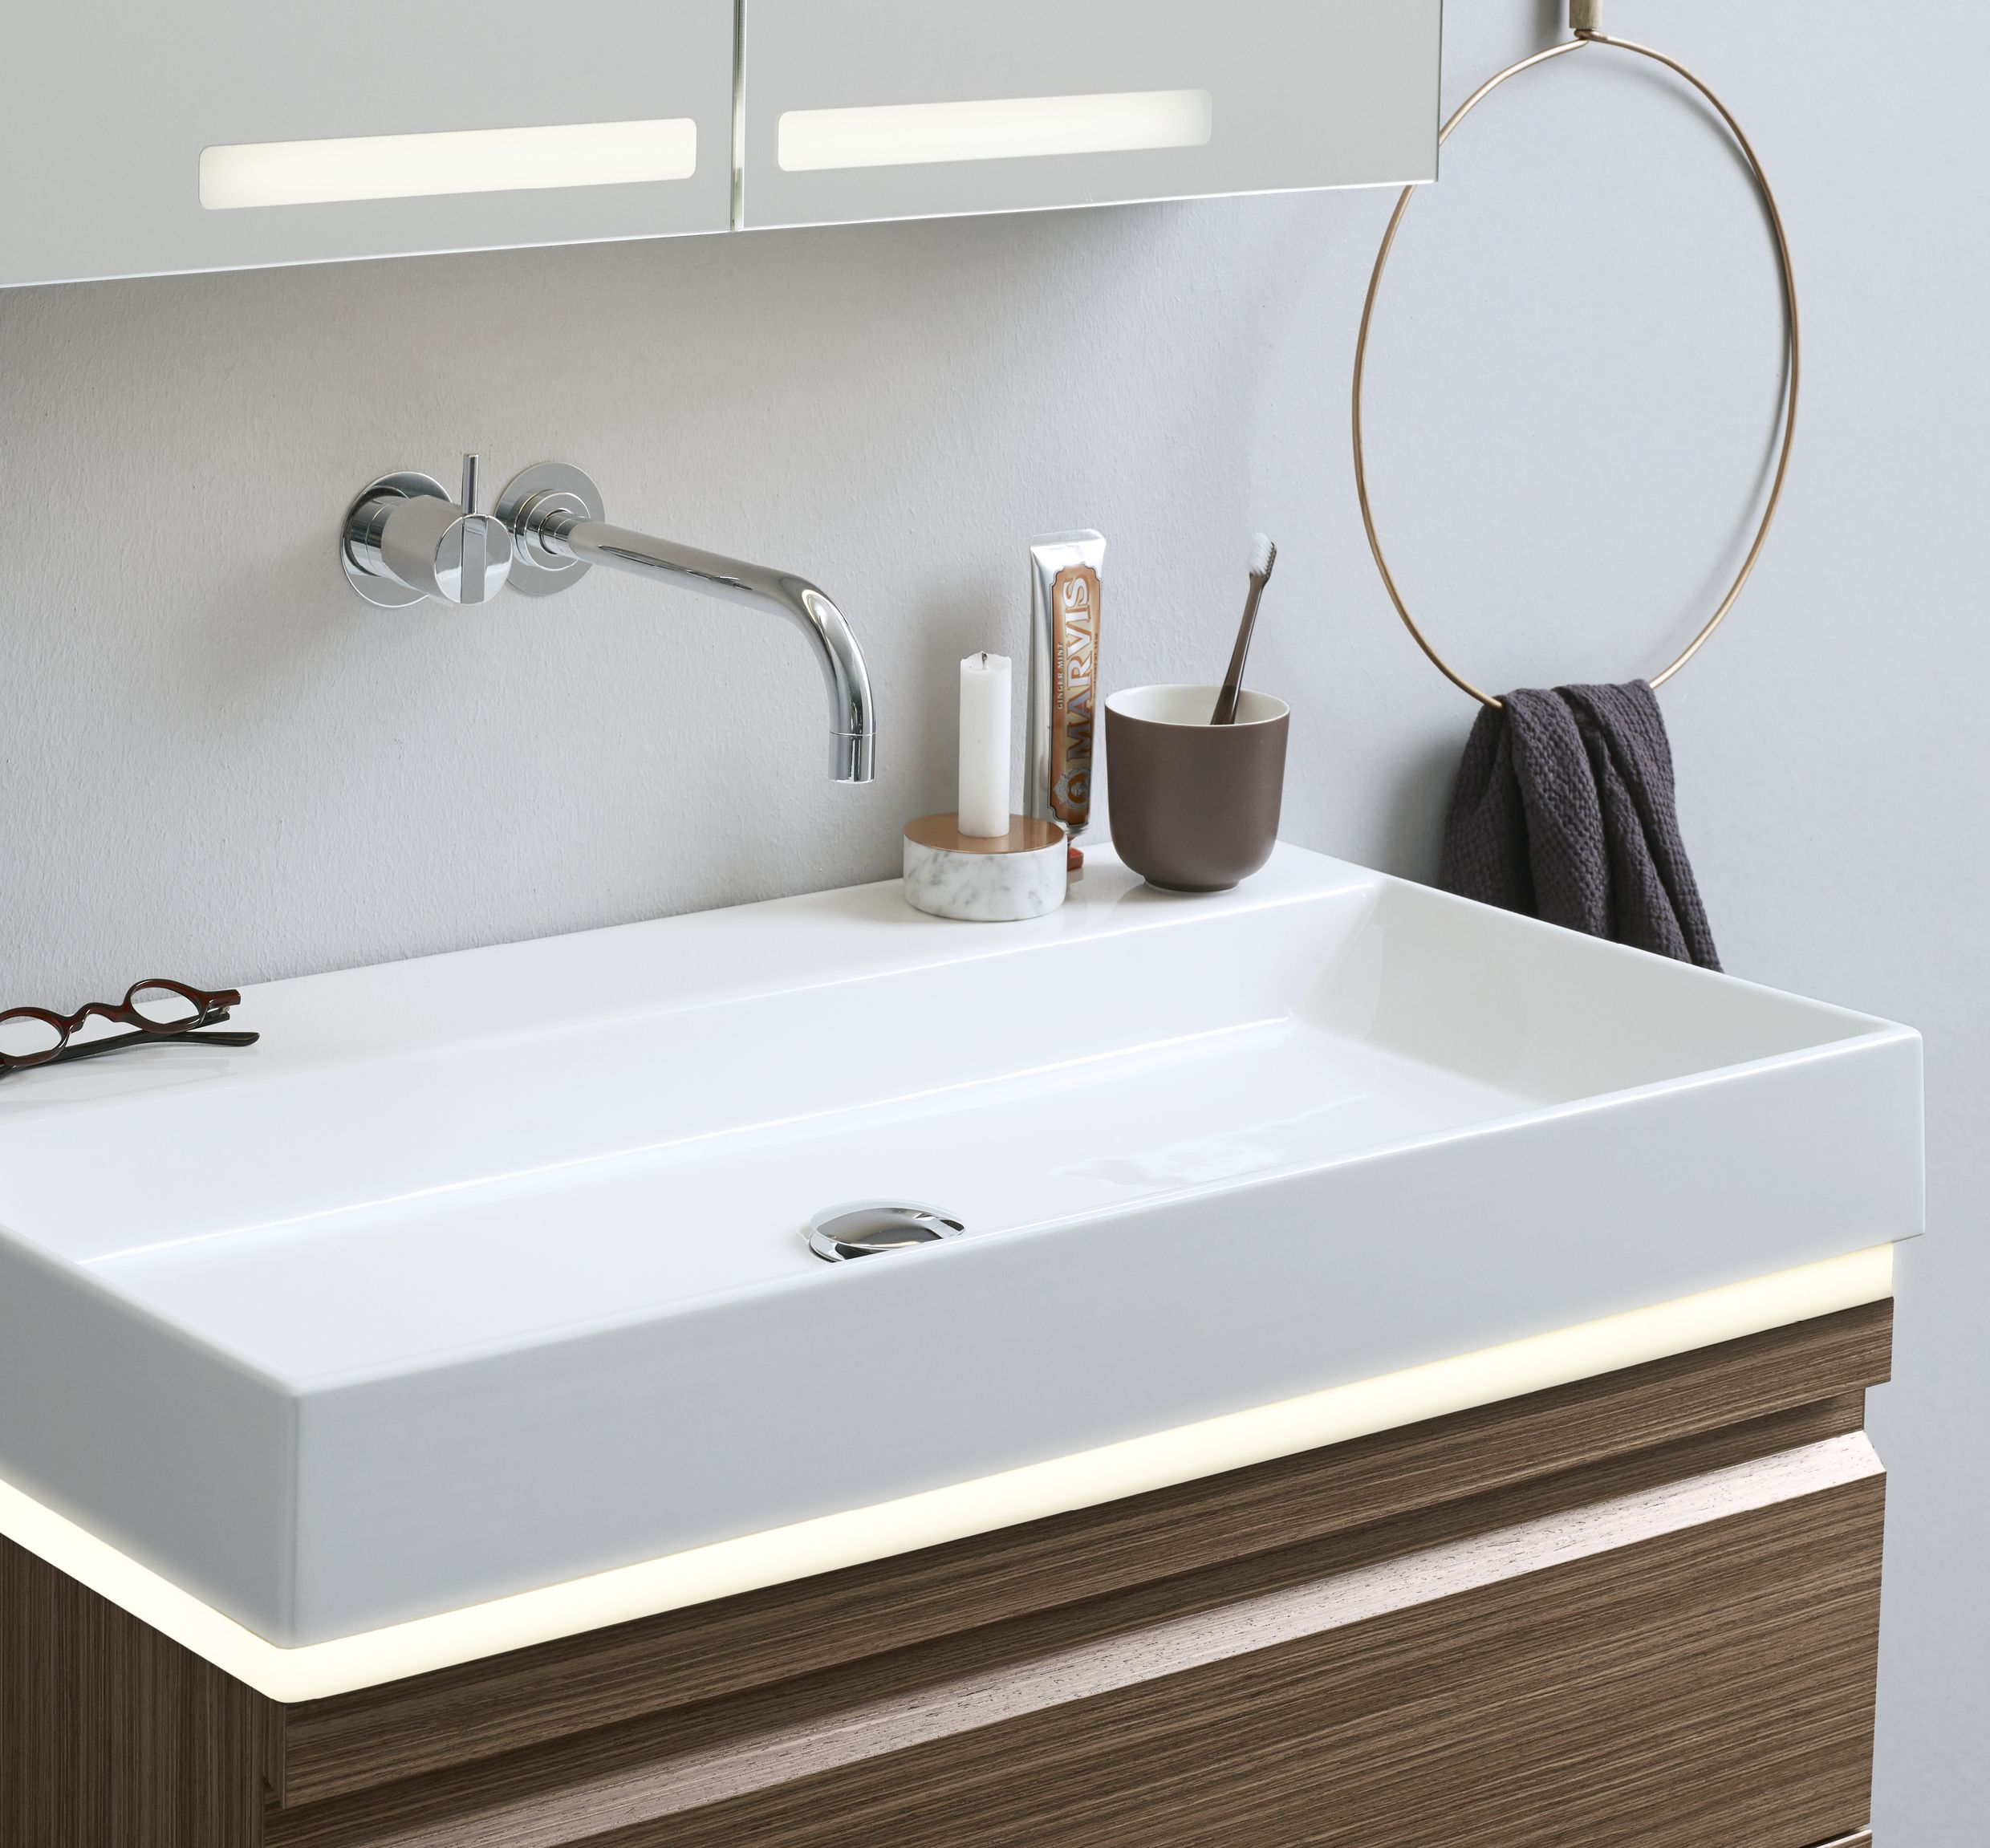 Bathroom Under Light lighting under the washbasin or in drawers gives a beautiful